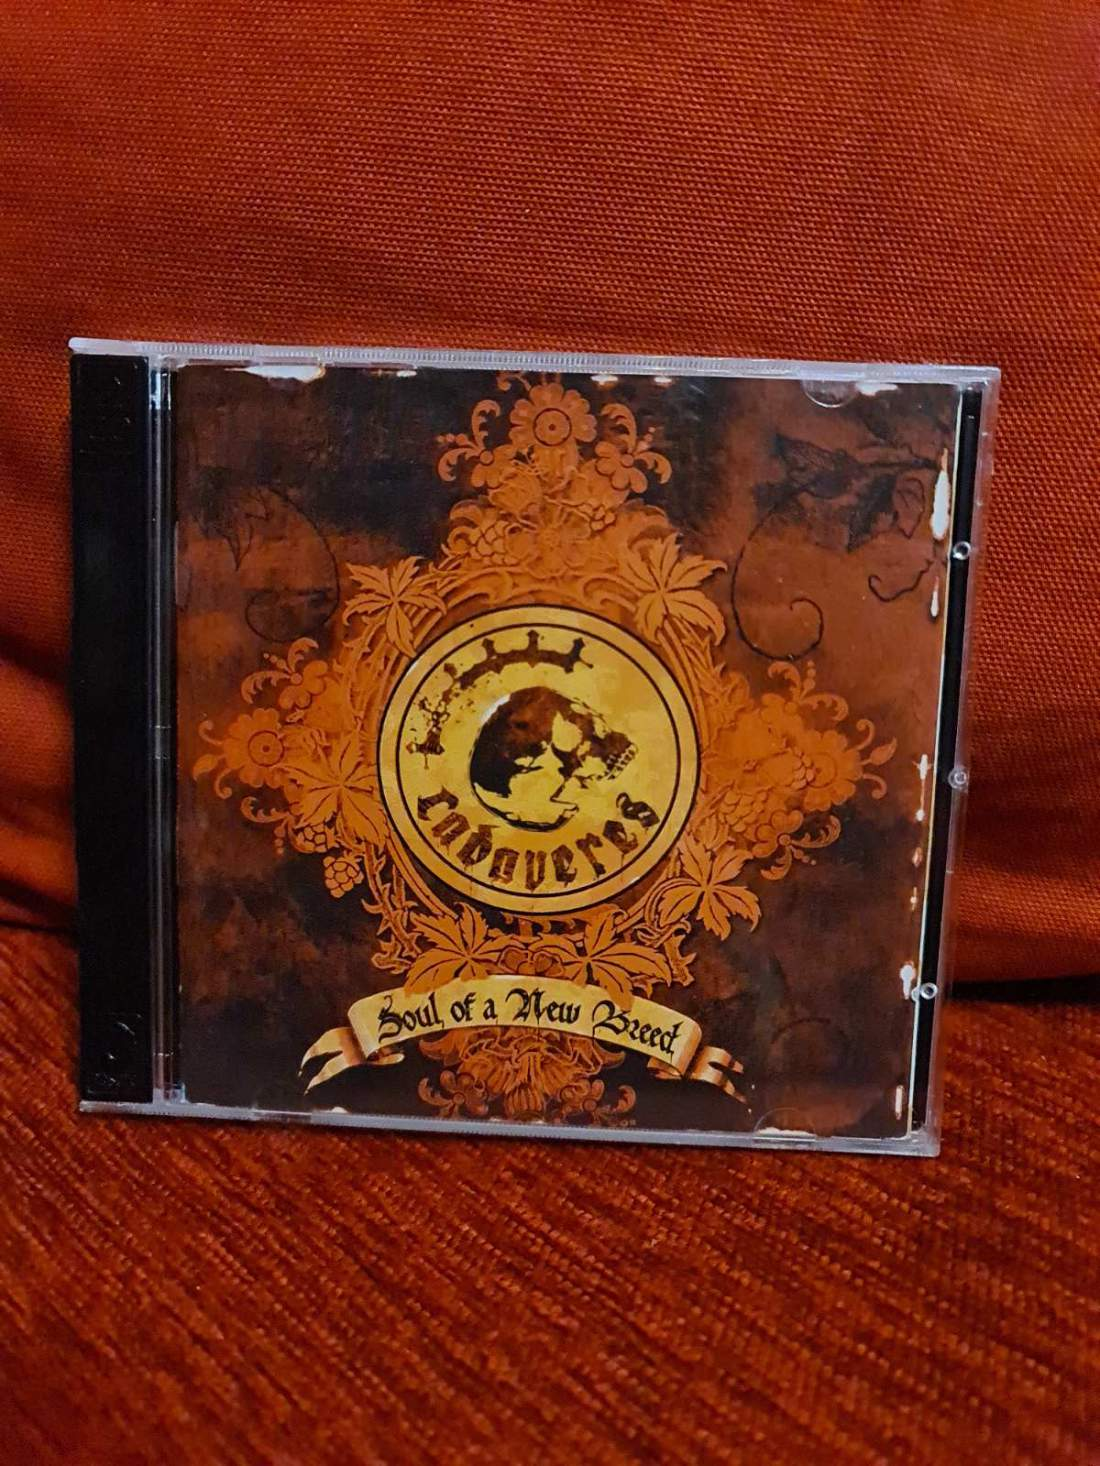 CADAVERES - SOUL OF A NEW BREED CD